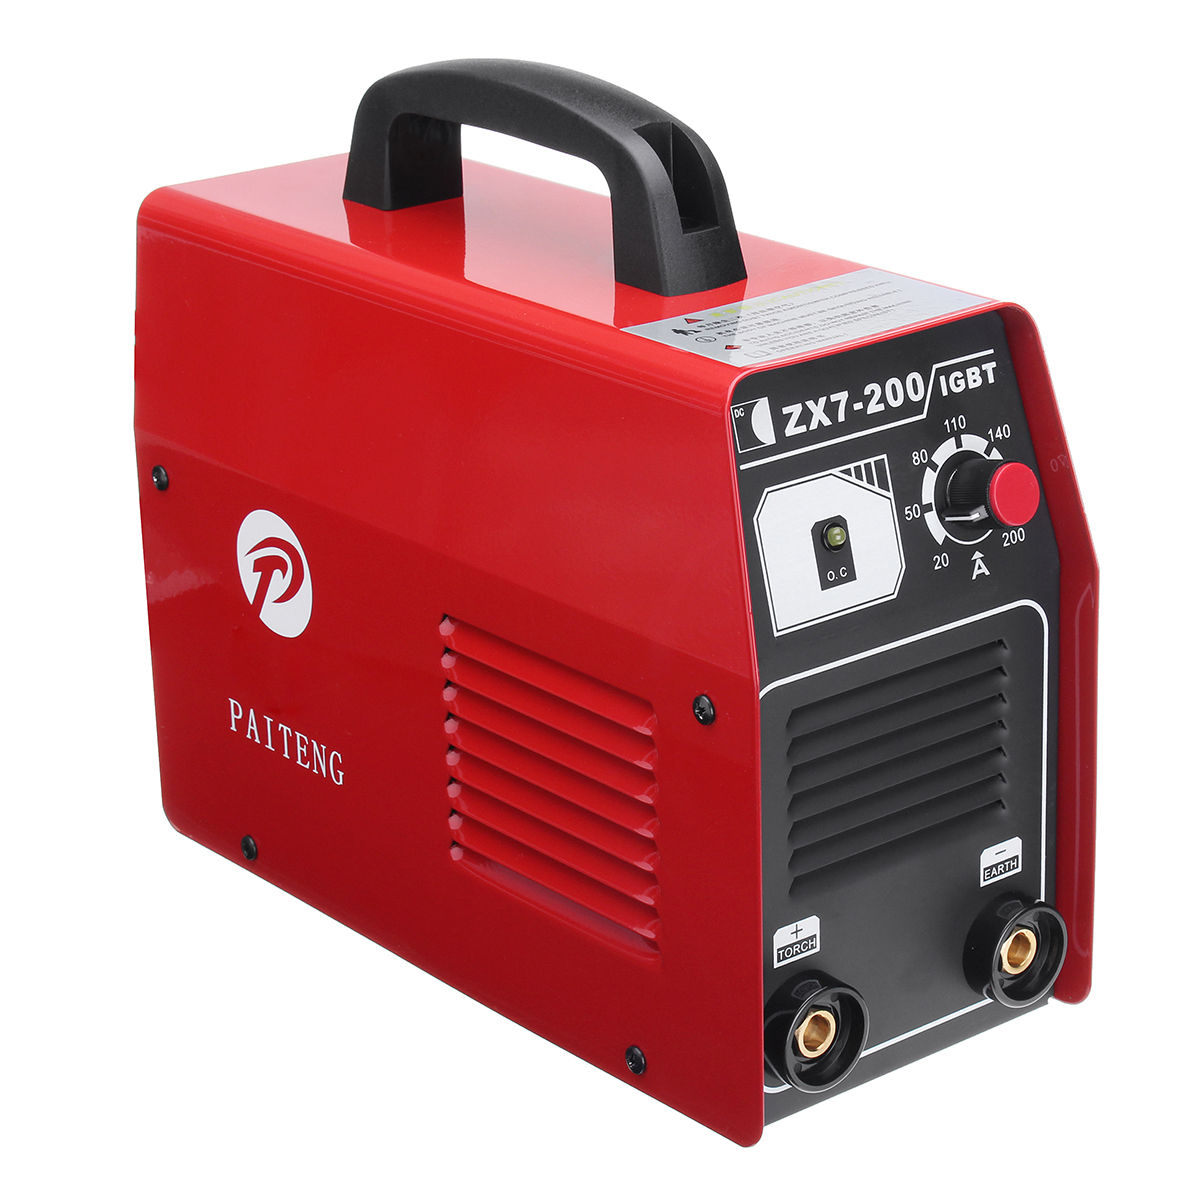 Cnc Welding Supplier South Africa: 220V 3500W ZX7-200 Electric